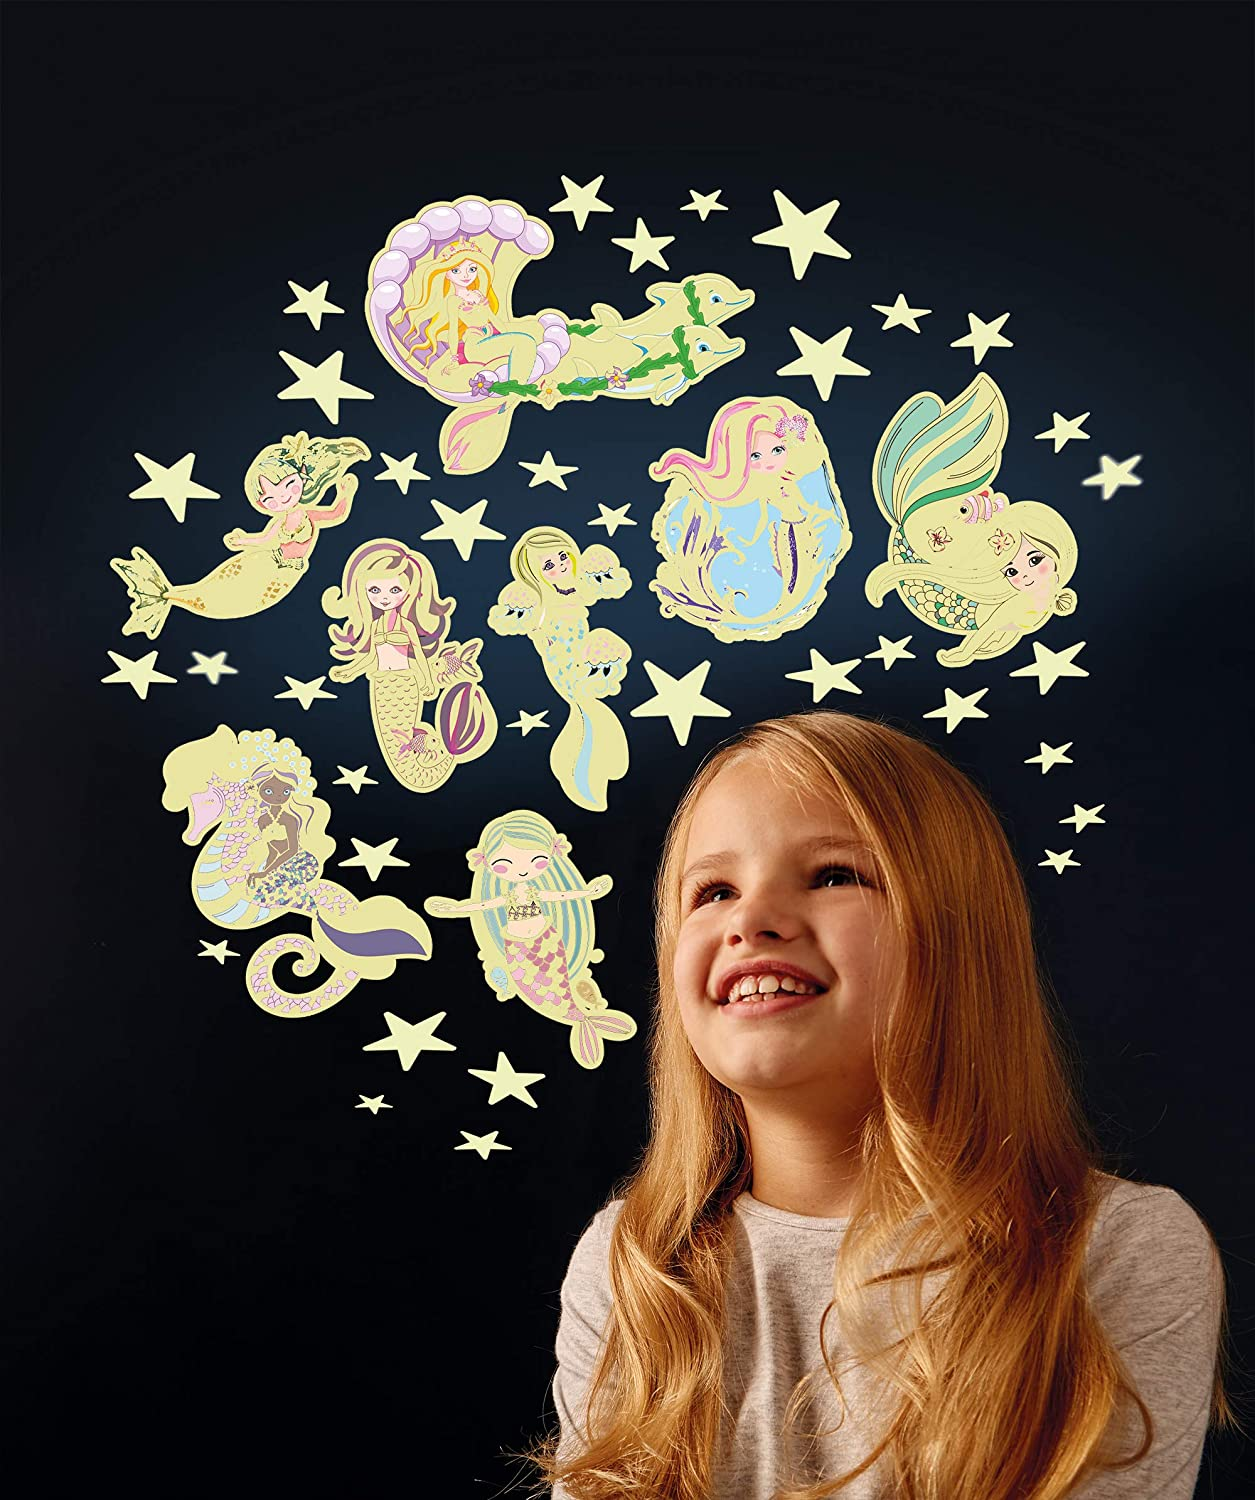 Glow in The Dark The Original Glowstars Mermaids and Glitter Stars Glow-in-The-Dark Set Designed for Children Ages 3 Years